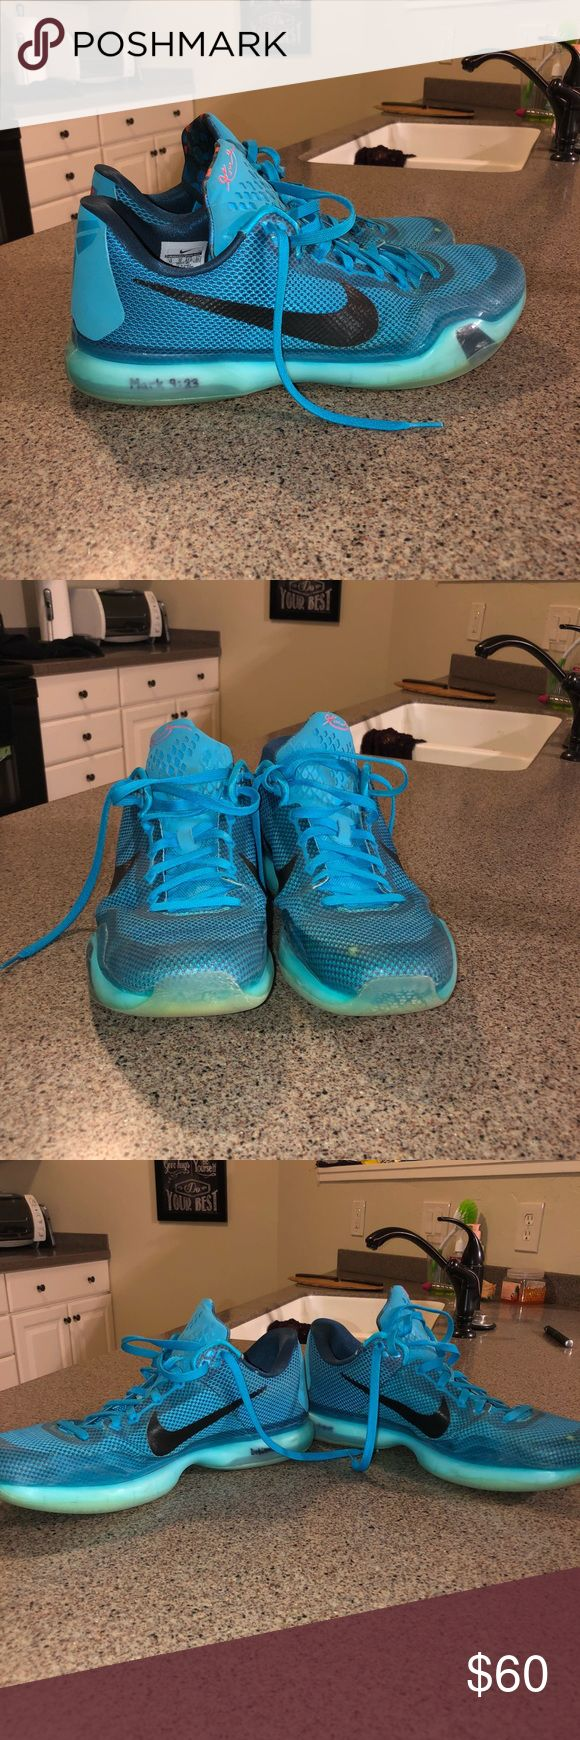 Nike Kobe 10 The original Kobe 10, overall good condition. Tracking is still great. Some rubber is wearing away on the left inside heel, but that doesn't affect the shoe. Nike Shoes Athletic Shoes